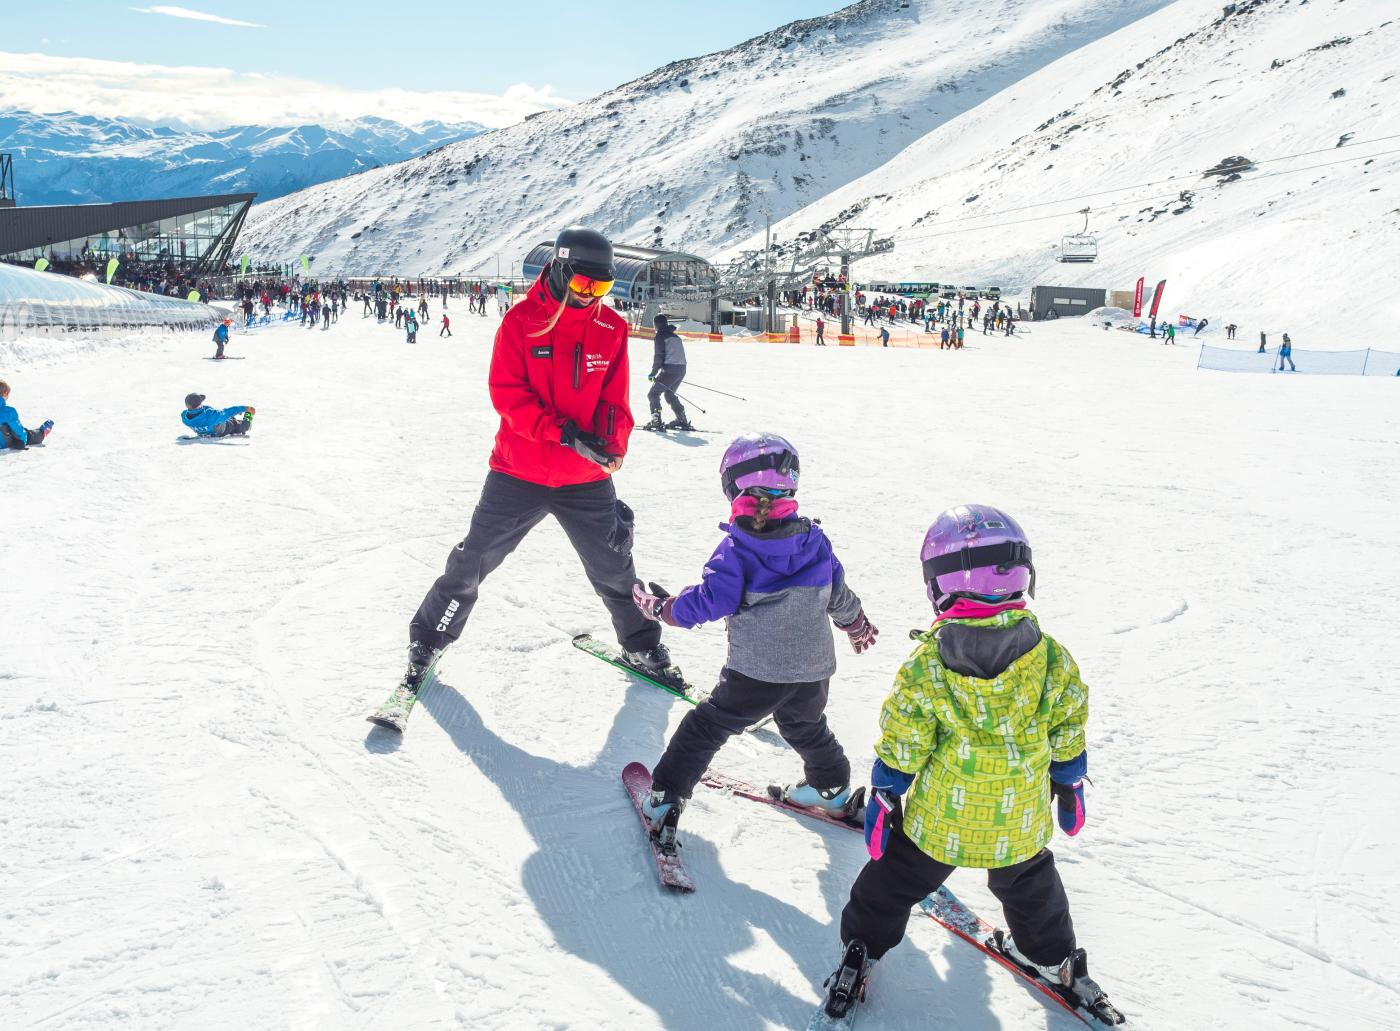 Kids Ski lesson at The Remarkables